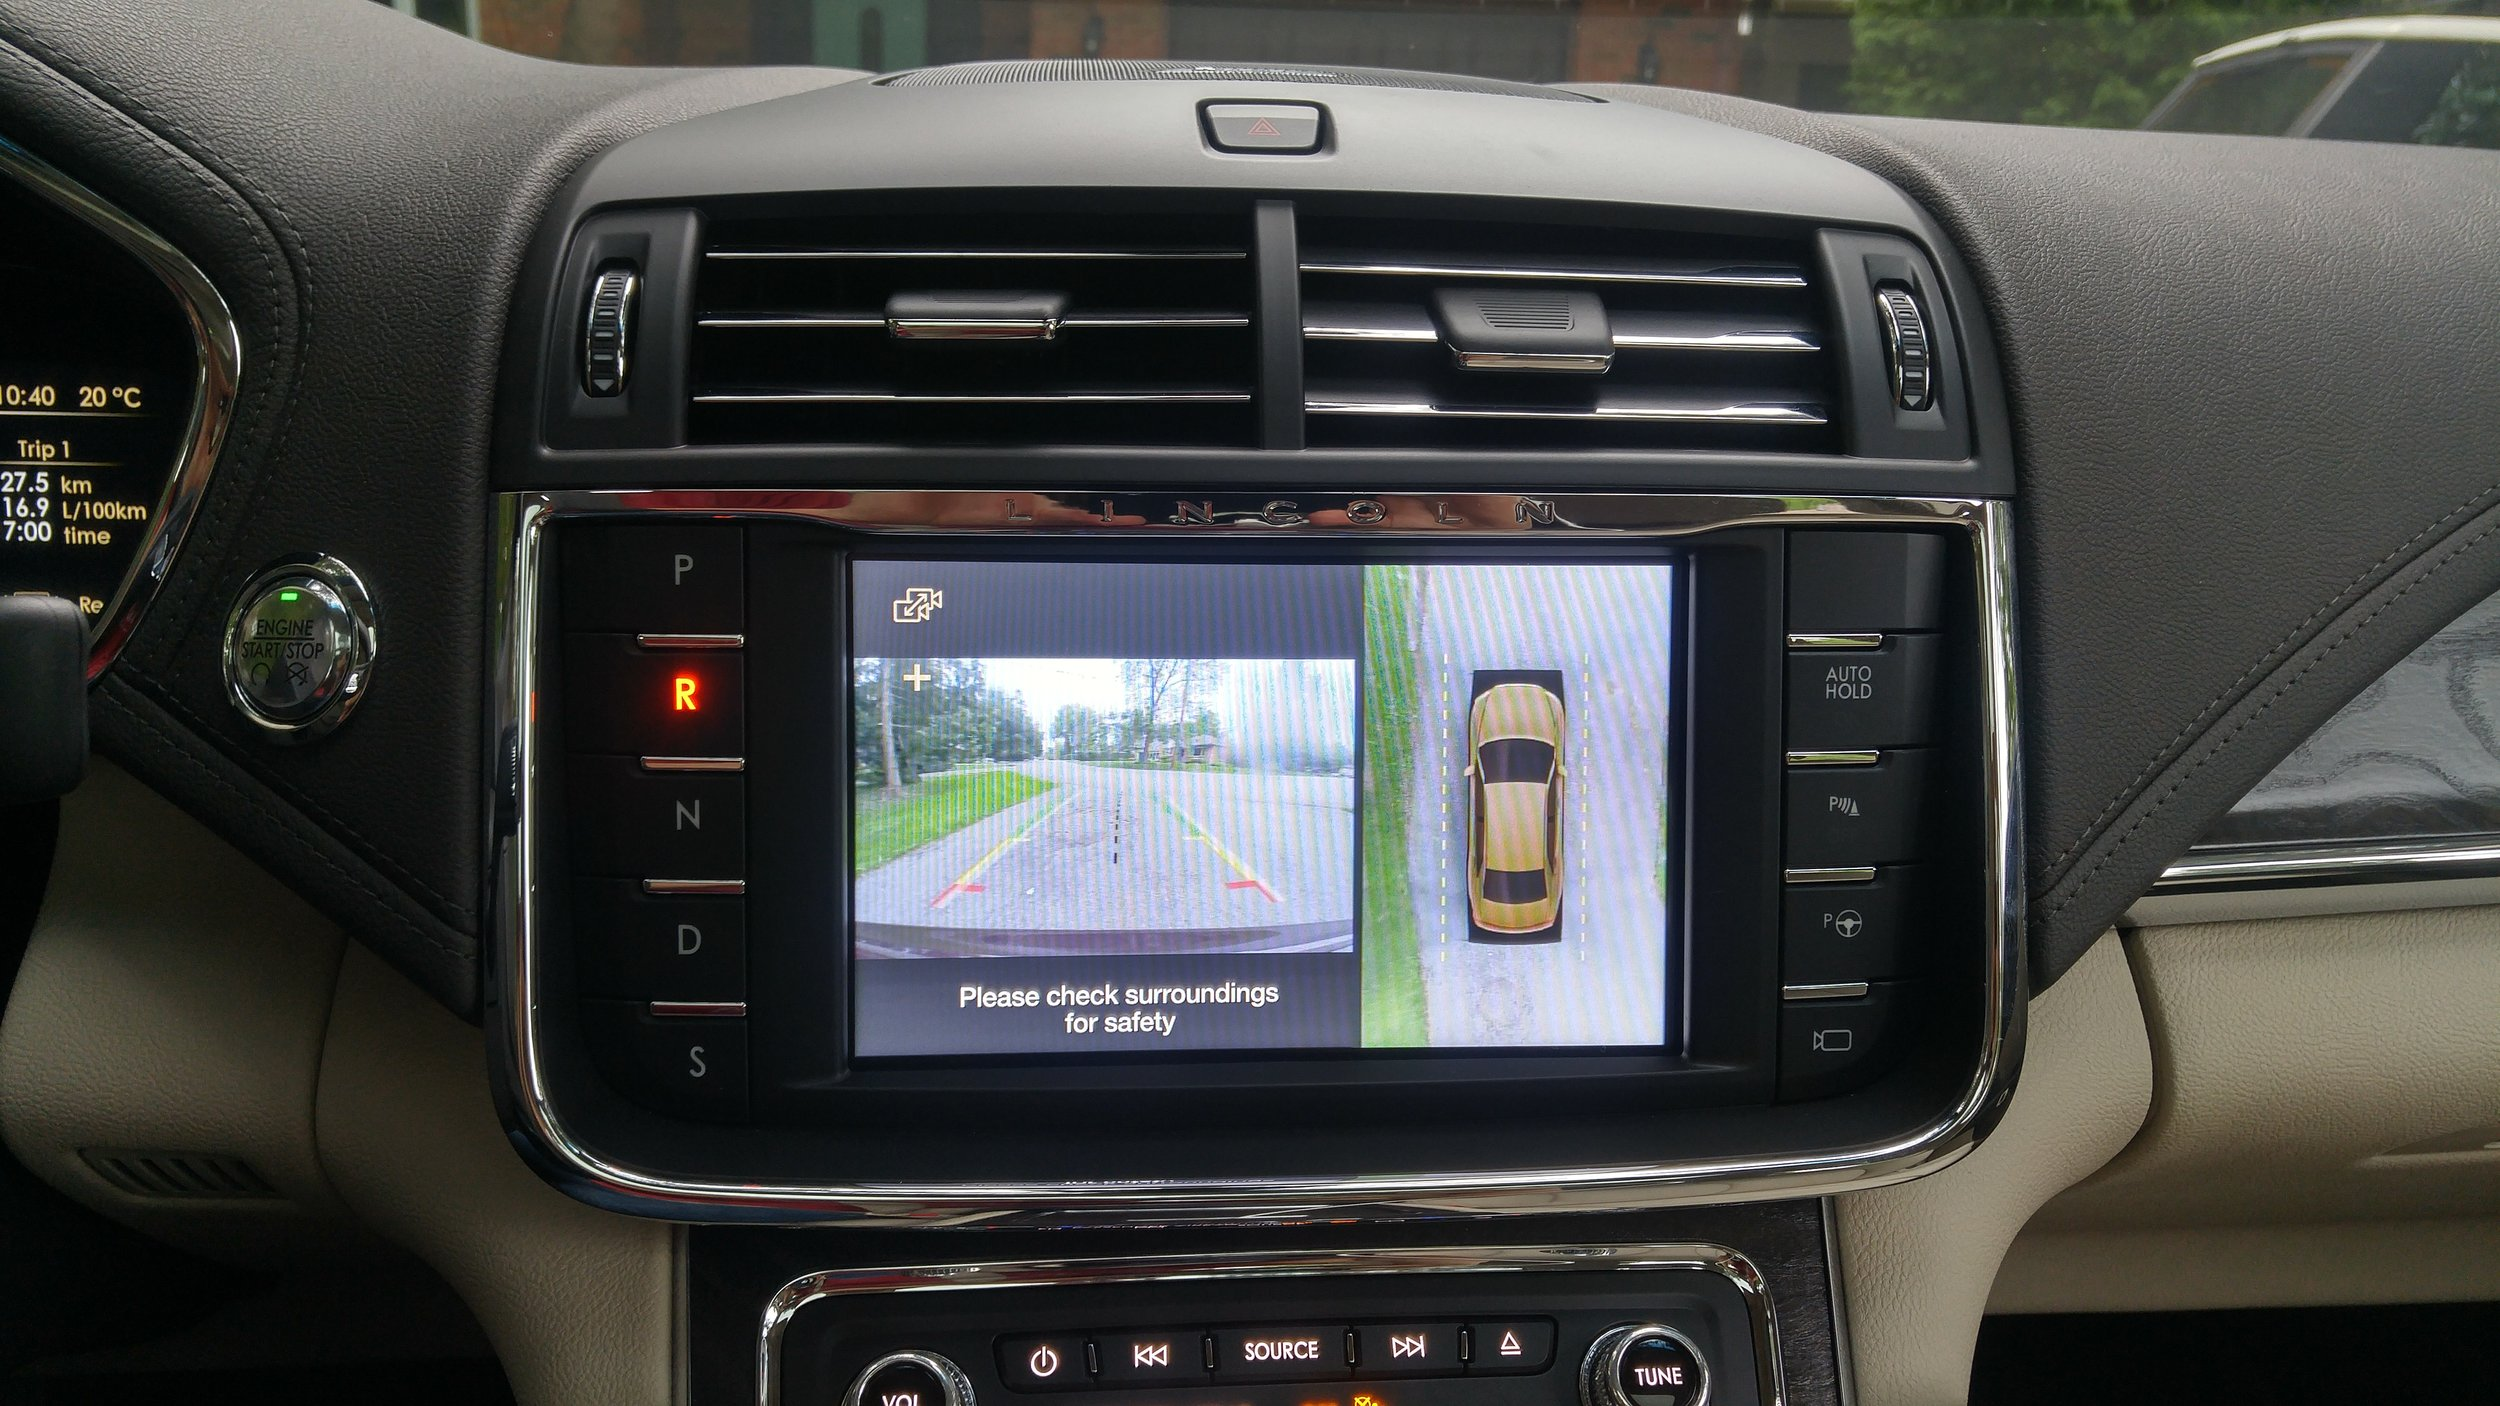 The 360-degree surround cameras stitch together a composite plan view which shows the Continental in relation to its surroundings. Perfect for threading the needle while parking this big sedan.